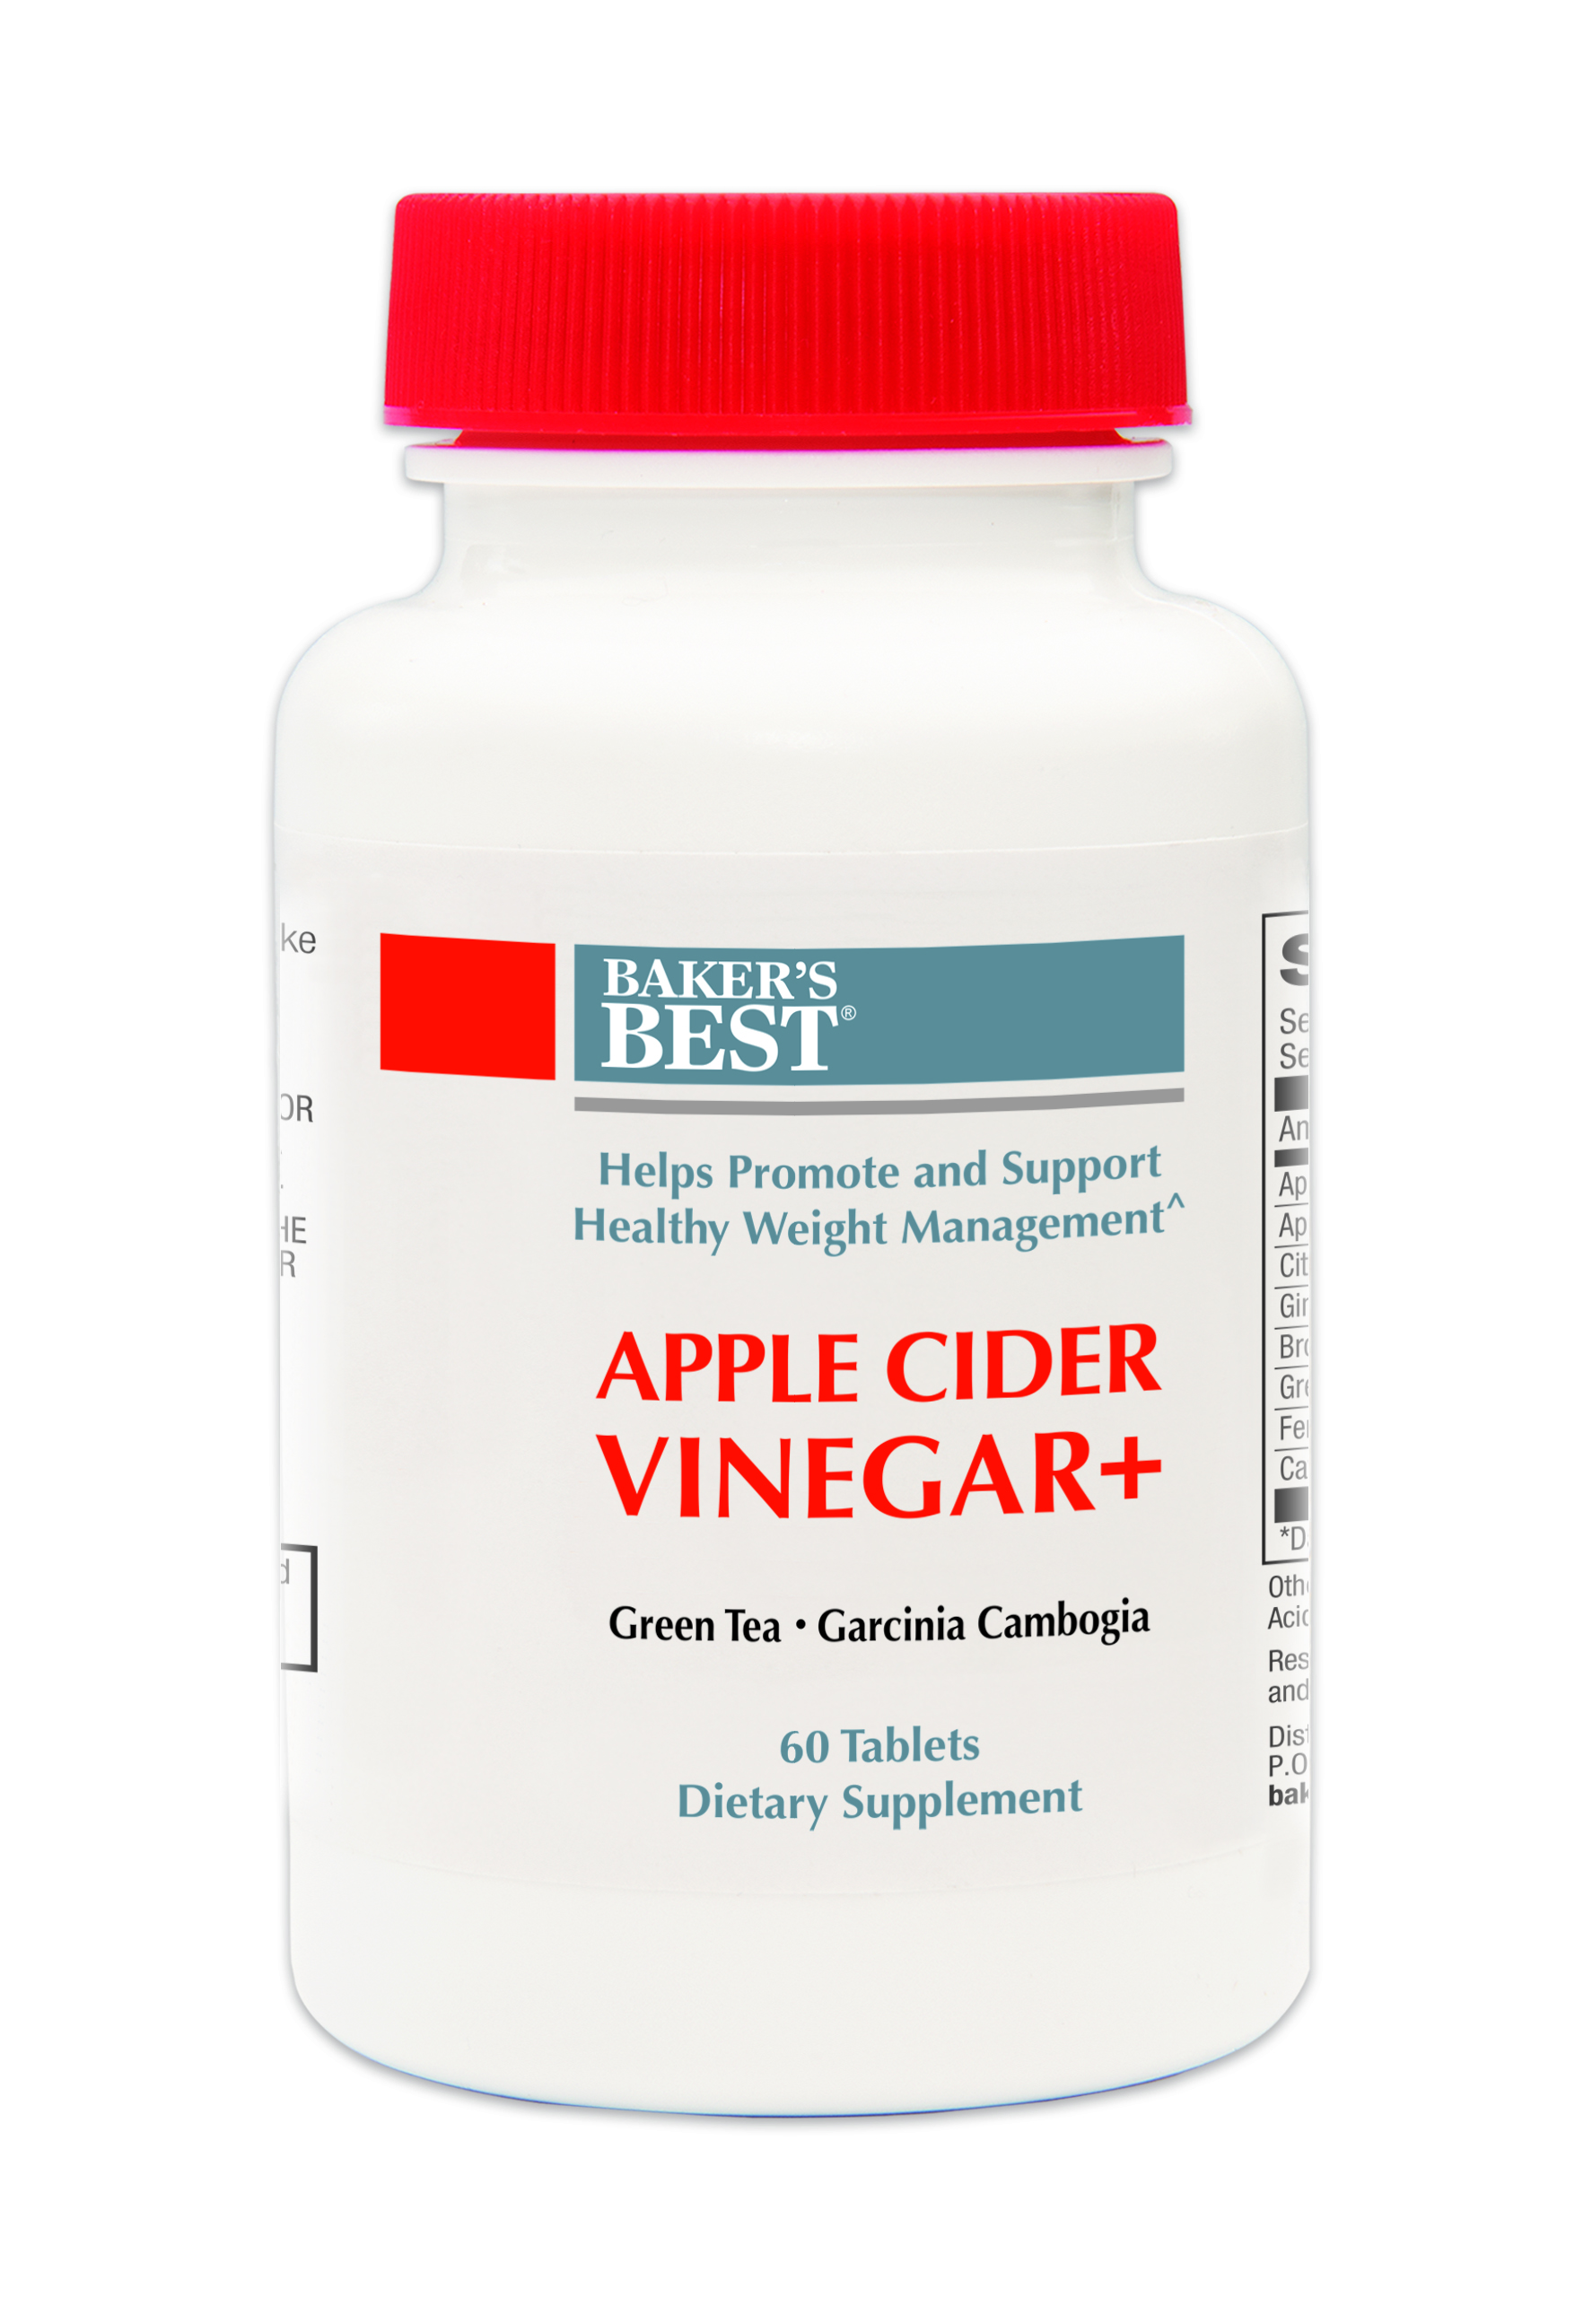 Apple Cider Vinegar+